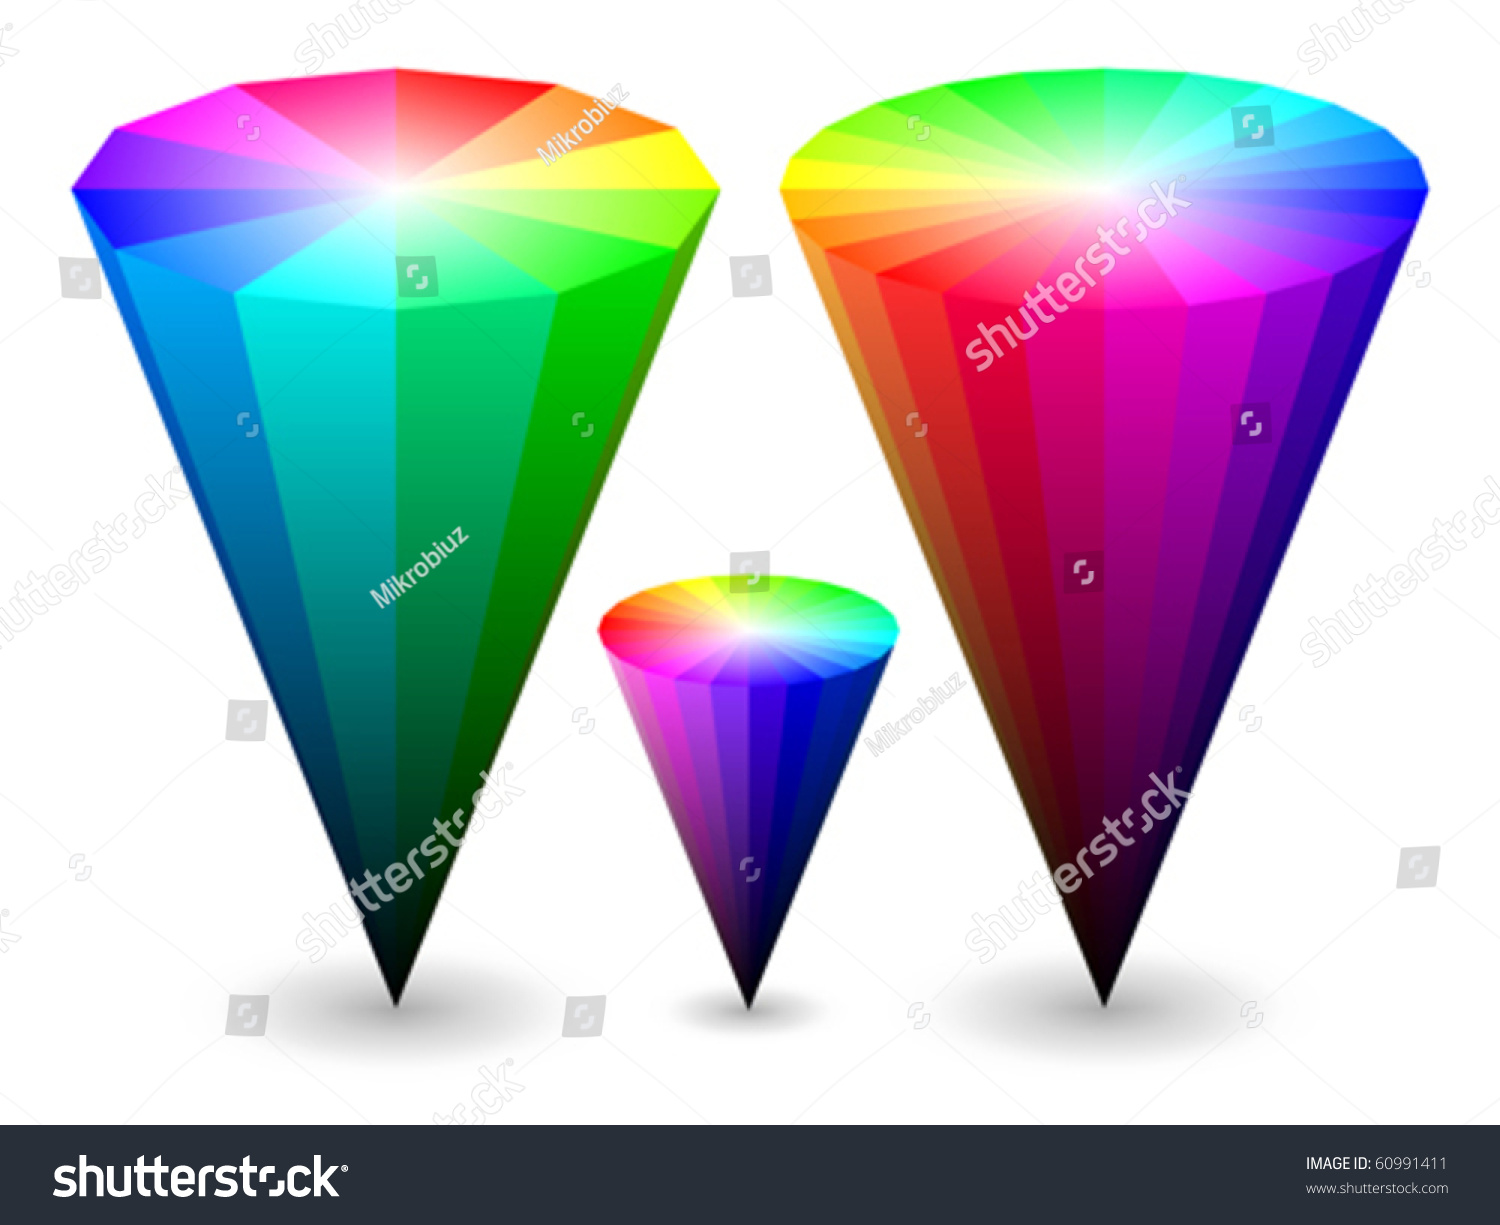 Pages rgb color - Three Different Vector Color Cones Representing Rgb Color Space